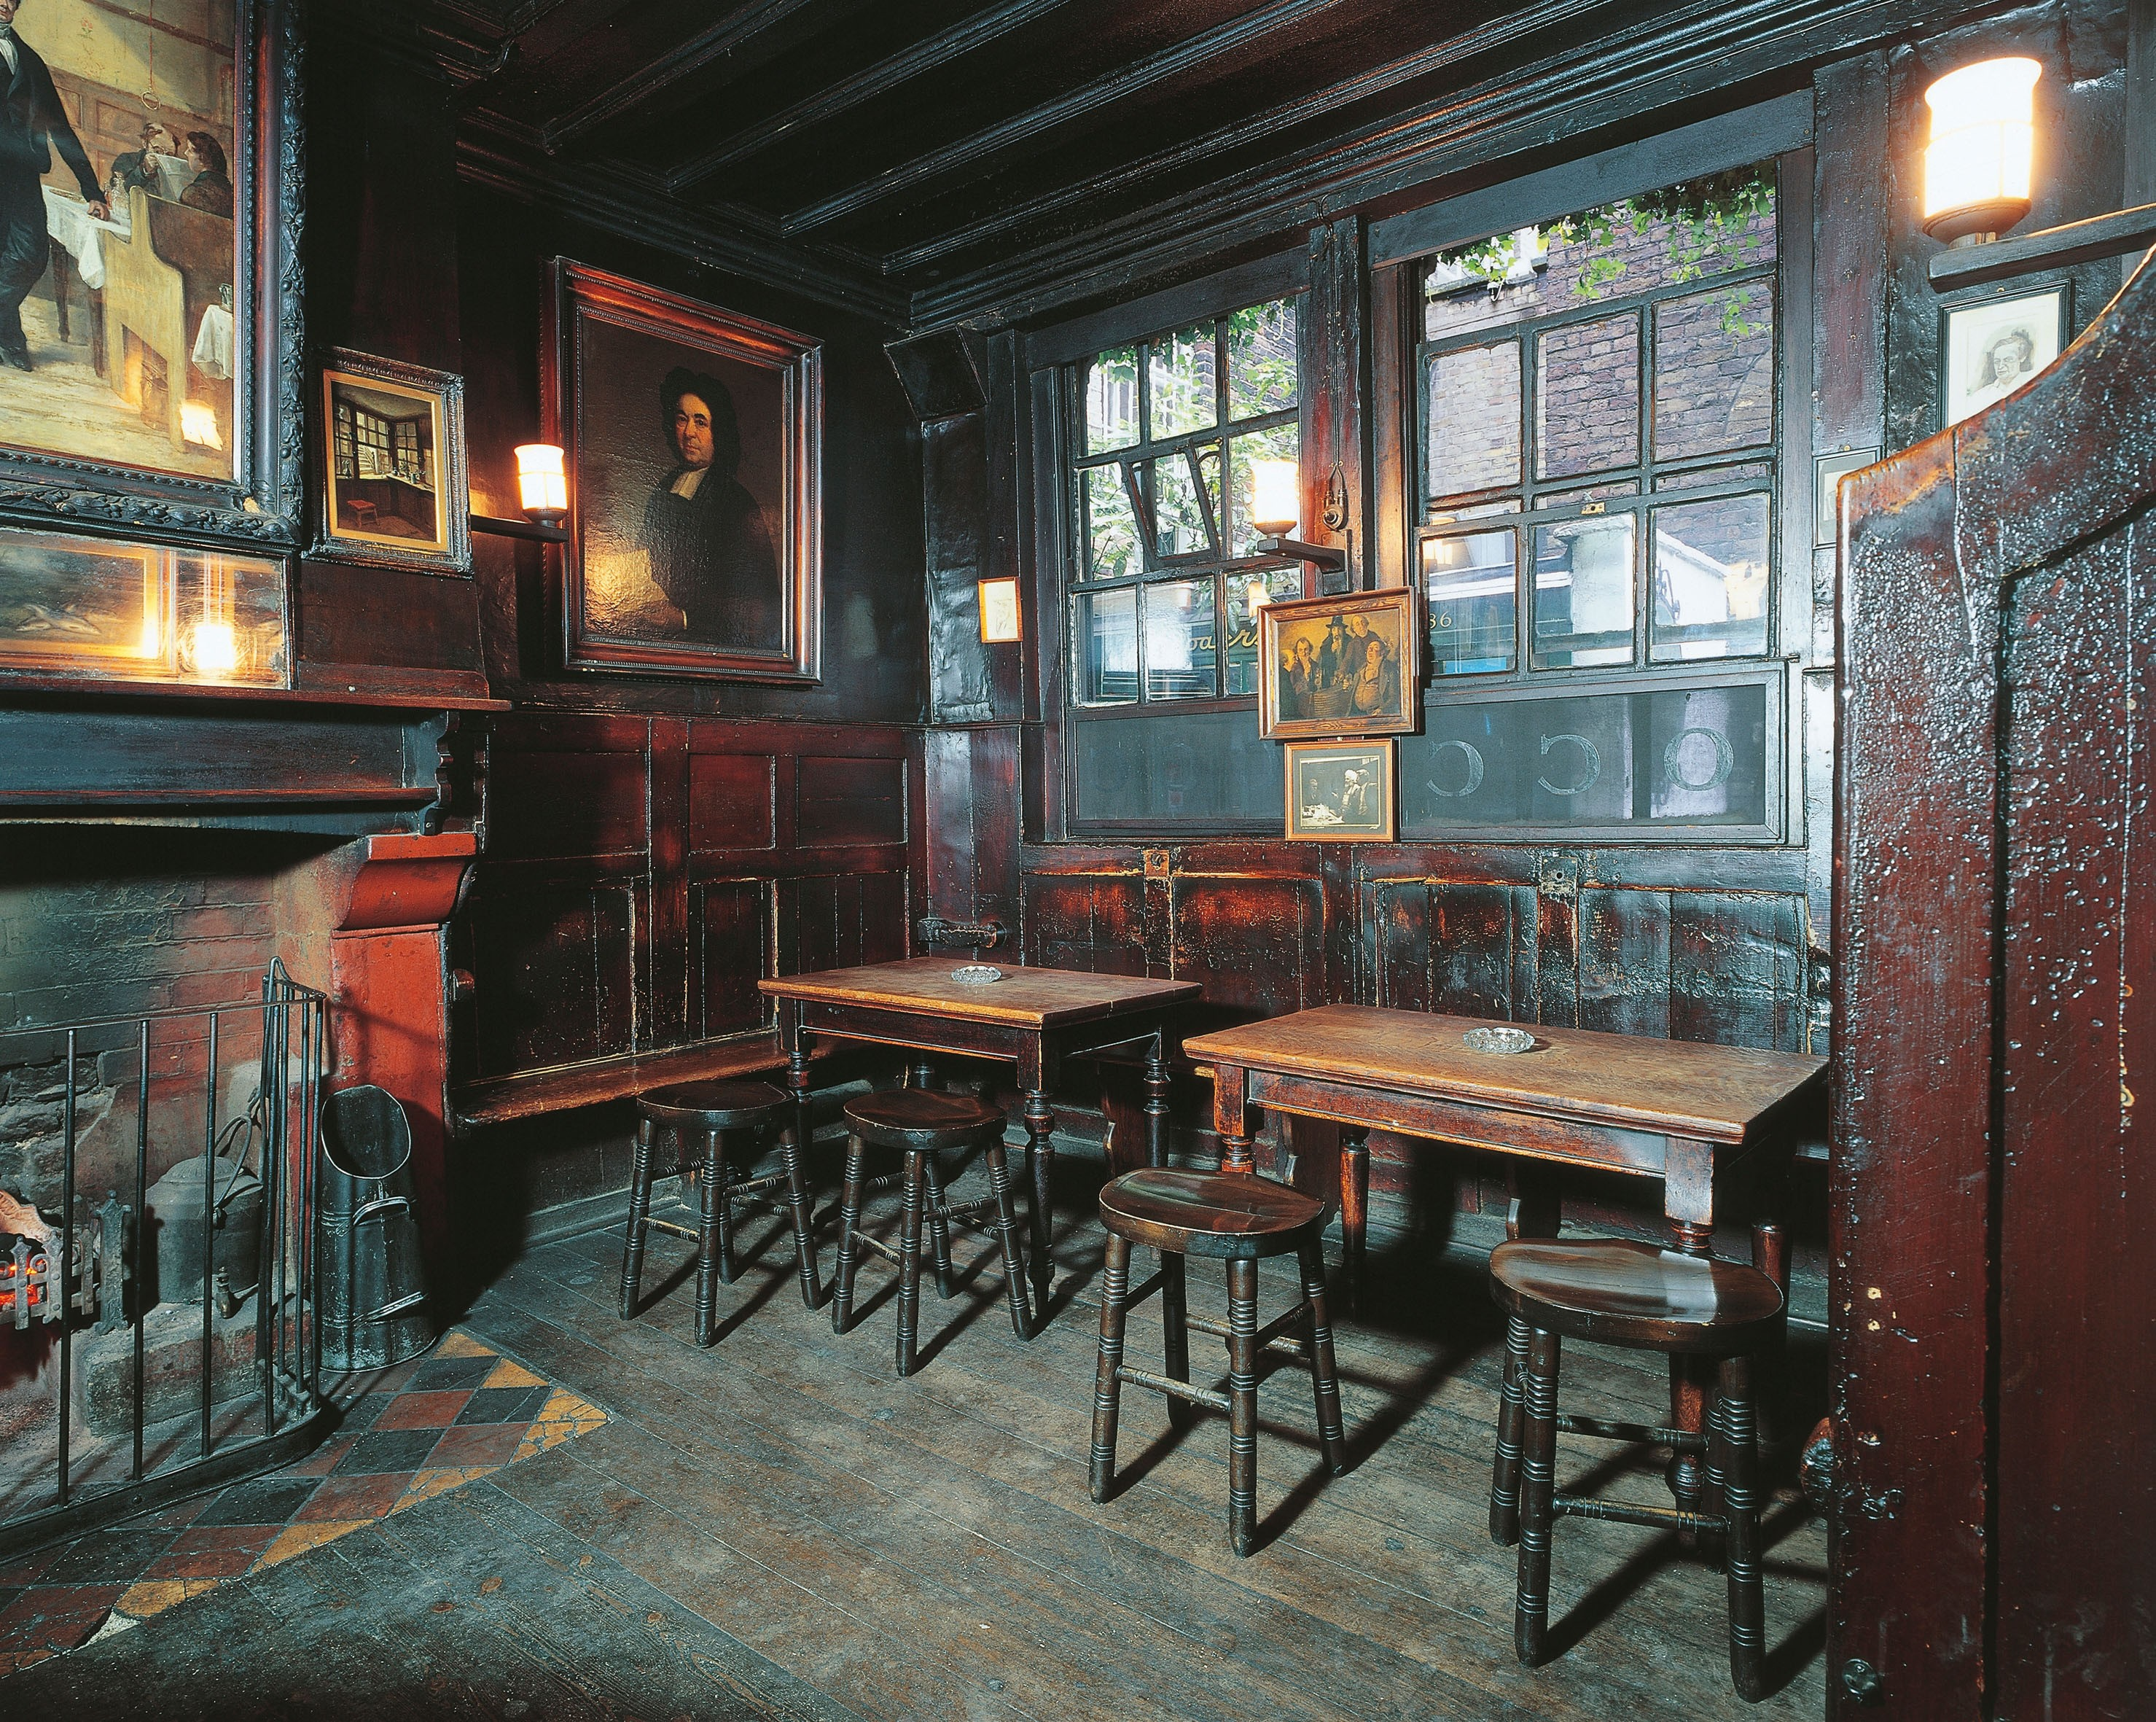 UNITED KINGDOM, LONDON. Ye Olde Cheshire Cheese Pub. INTERNAL